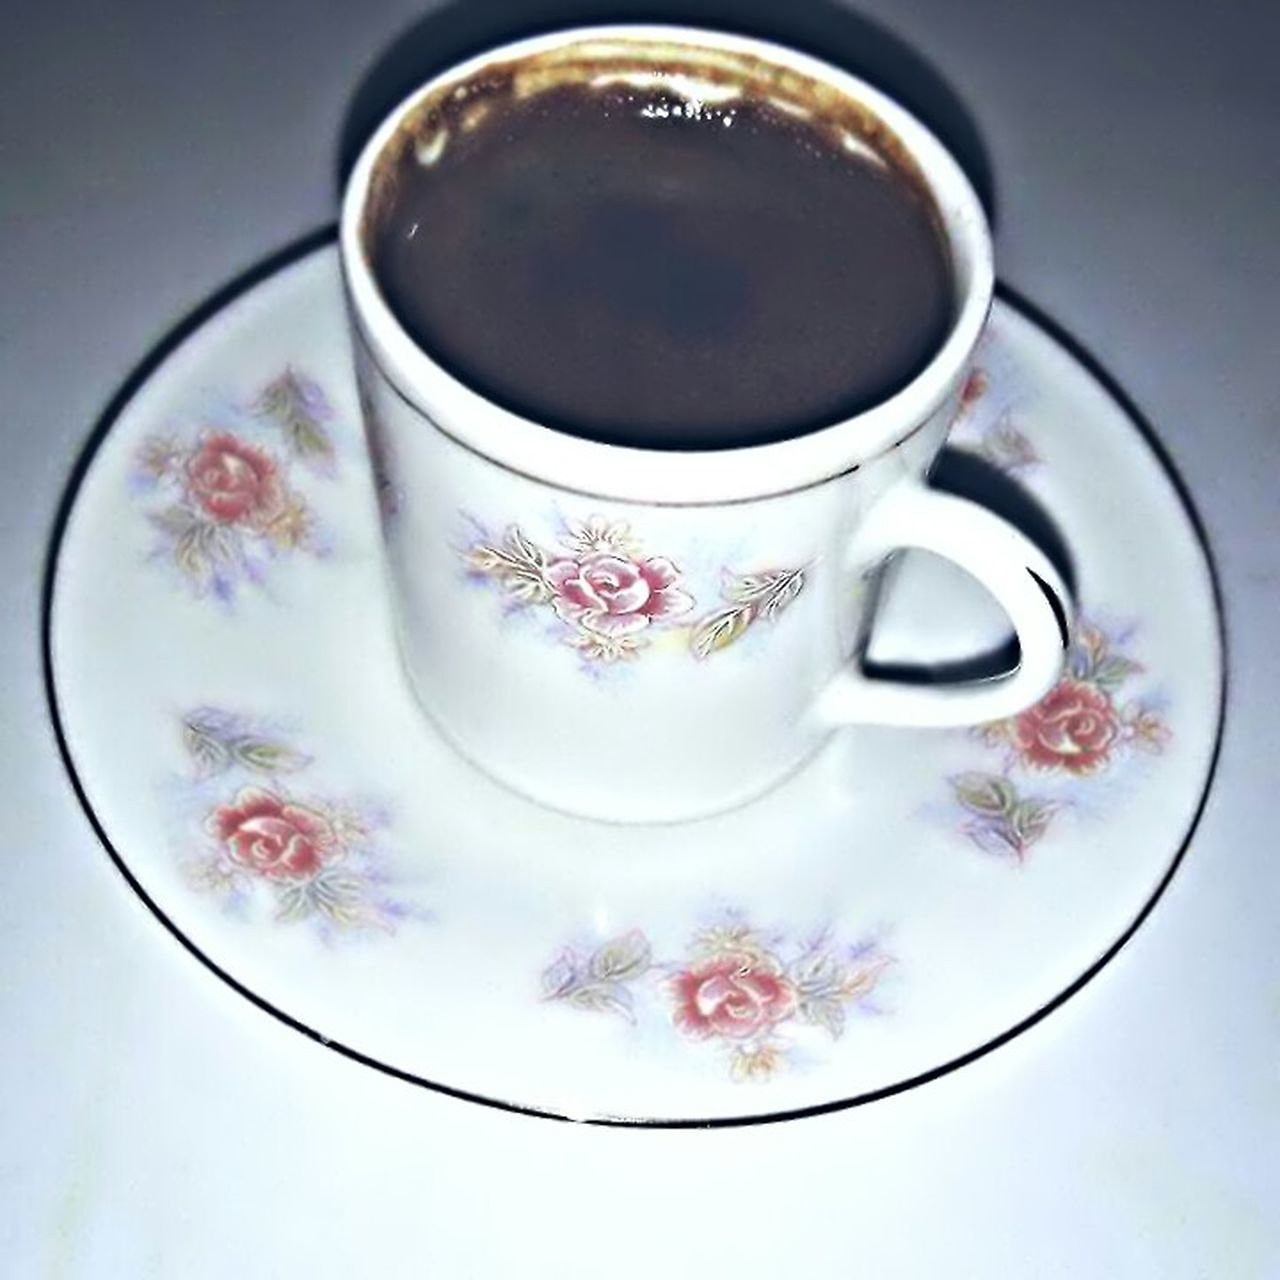 coffee cup, coffee - drink, saucer, drink, food and drink, refreshment, table, no people, high angle view, freshness, close-up, indoors, food, cappuccino, flower, day